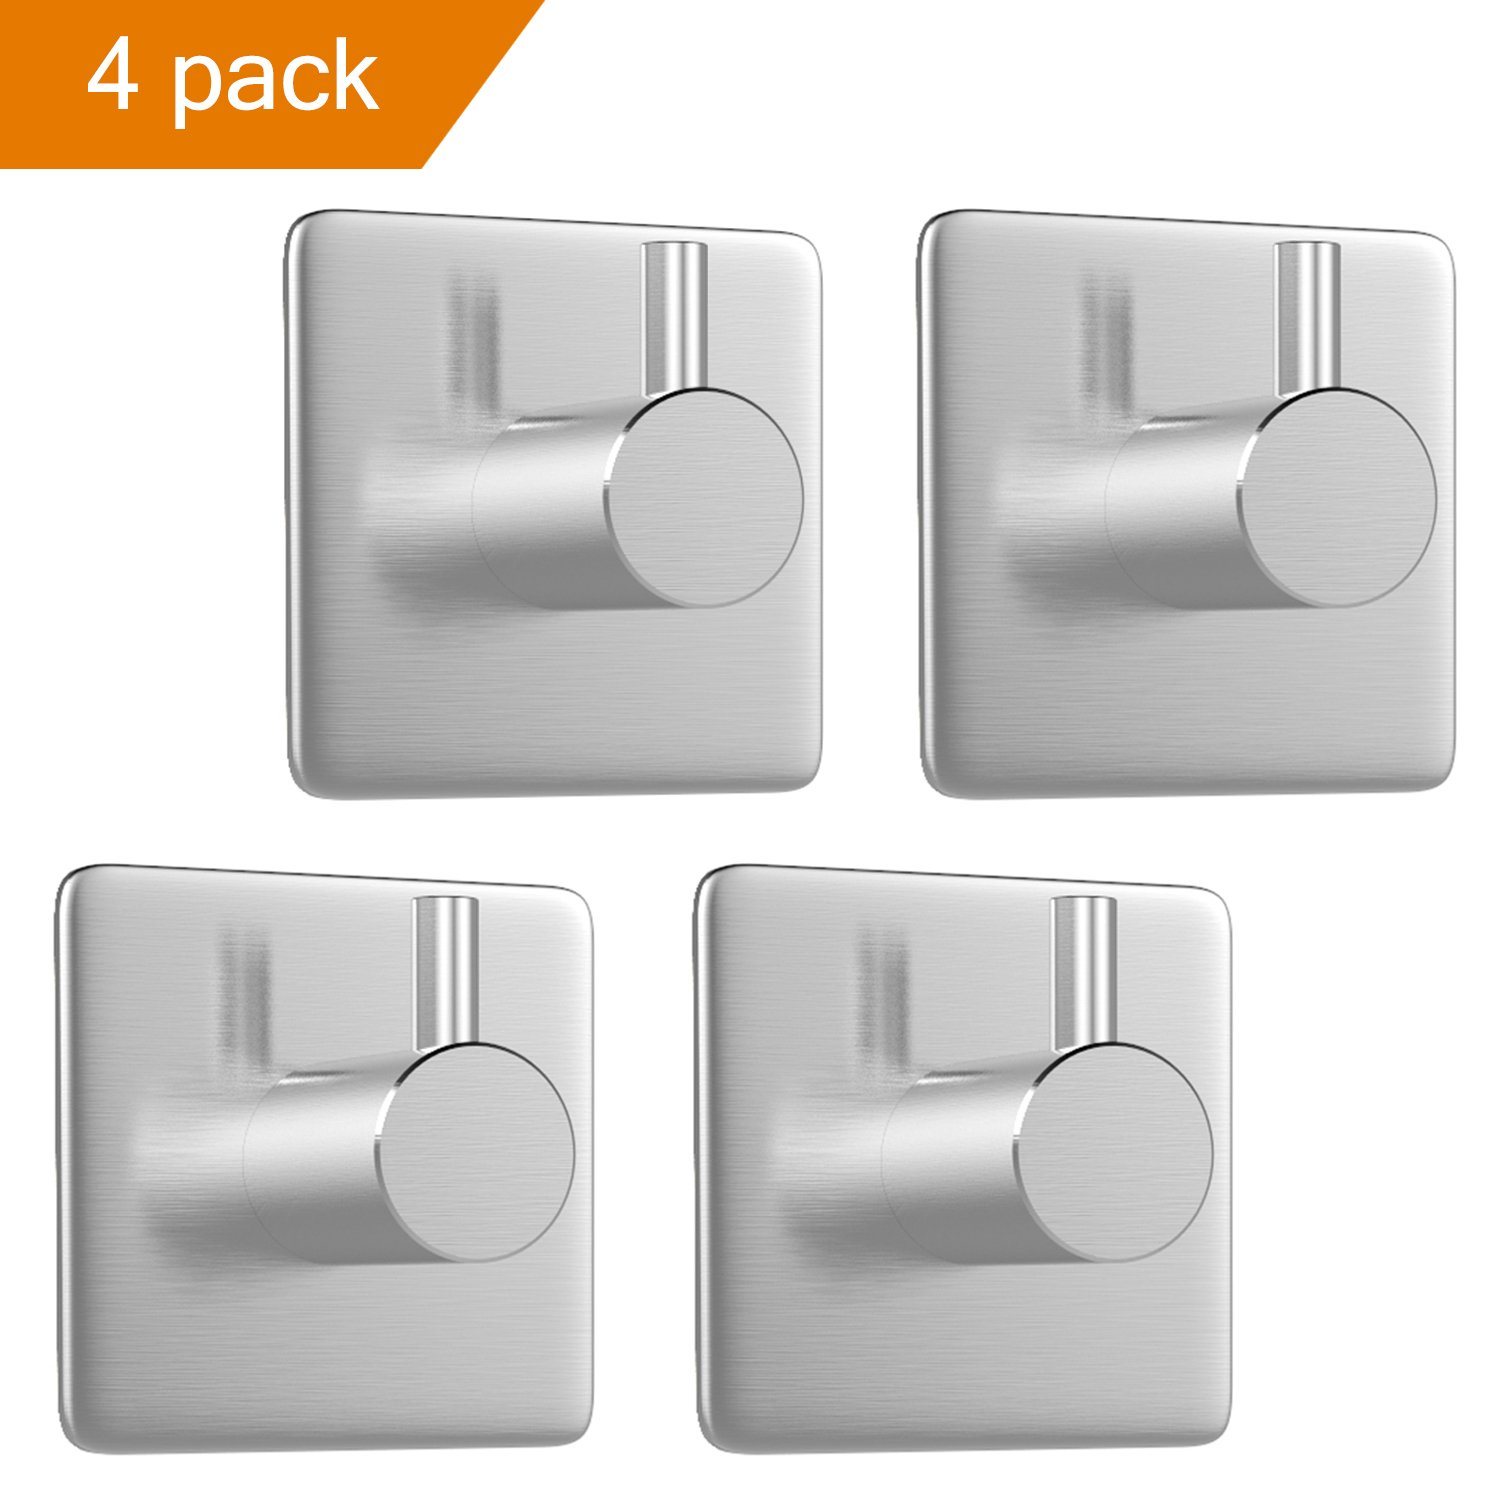 Luxspire 4PACK Self Adhesive Hook Kitchen Bathroom Wall Door Heavy Duty 304 Stainless Steel Stick Holder Hanger Brushed Finish